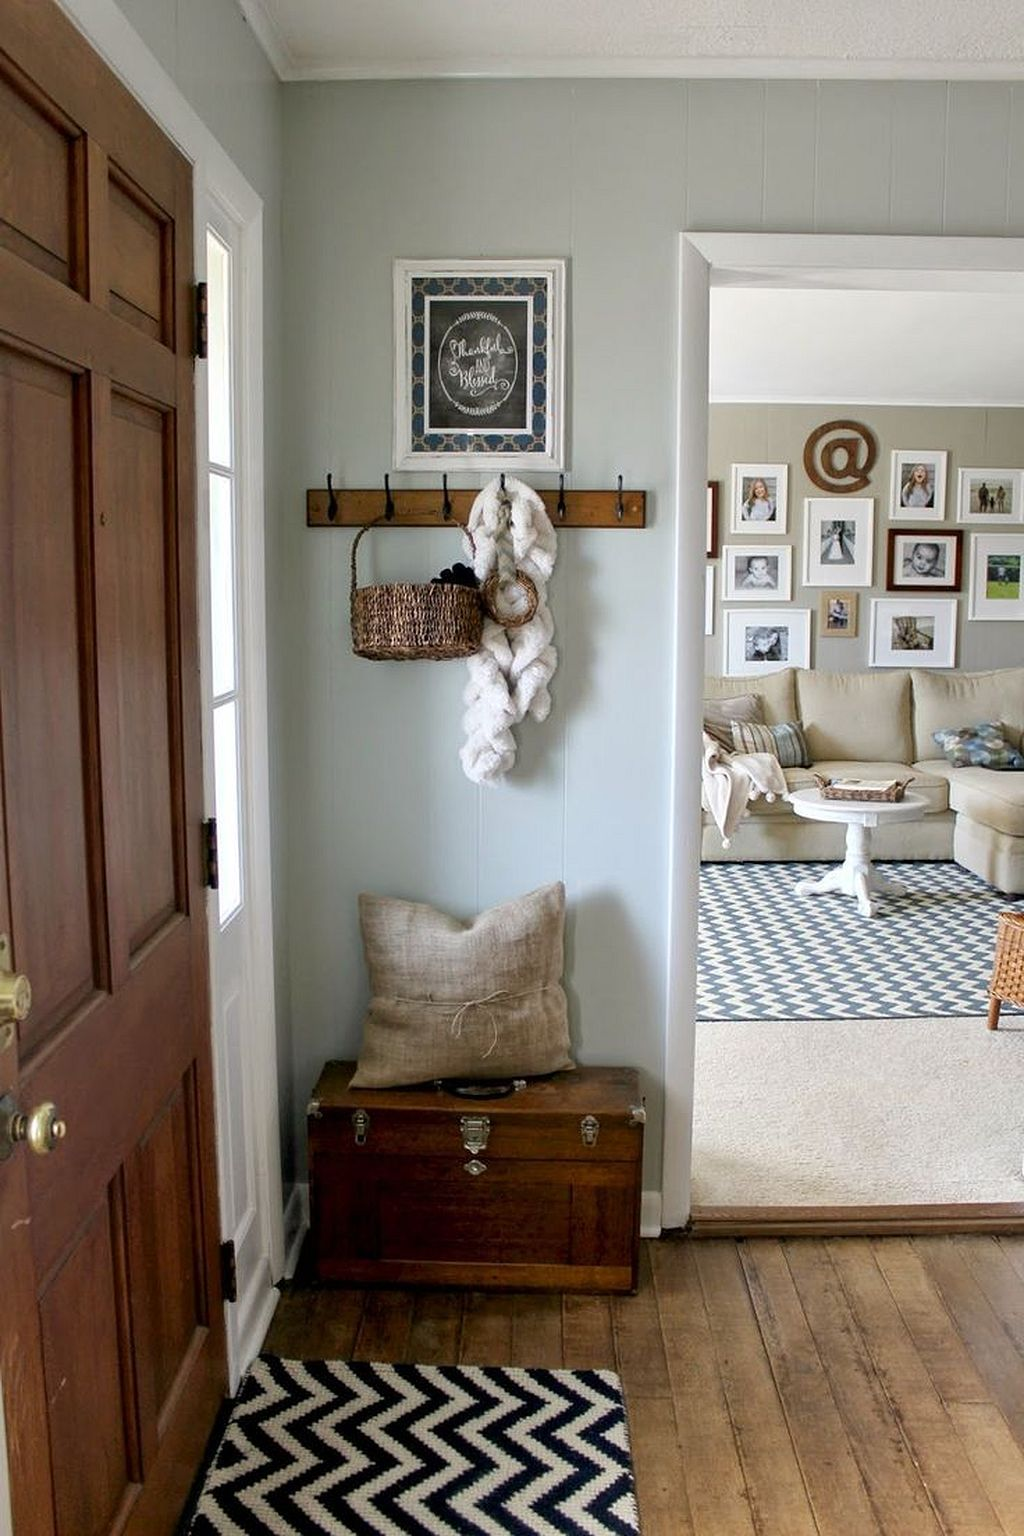 50 Awesome Small Entryway Ideas For Small Space With Decorating